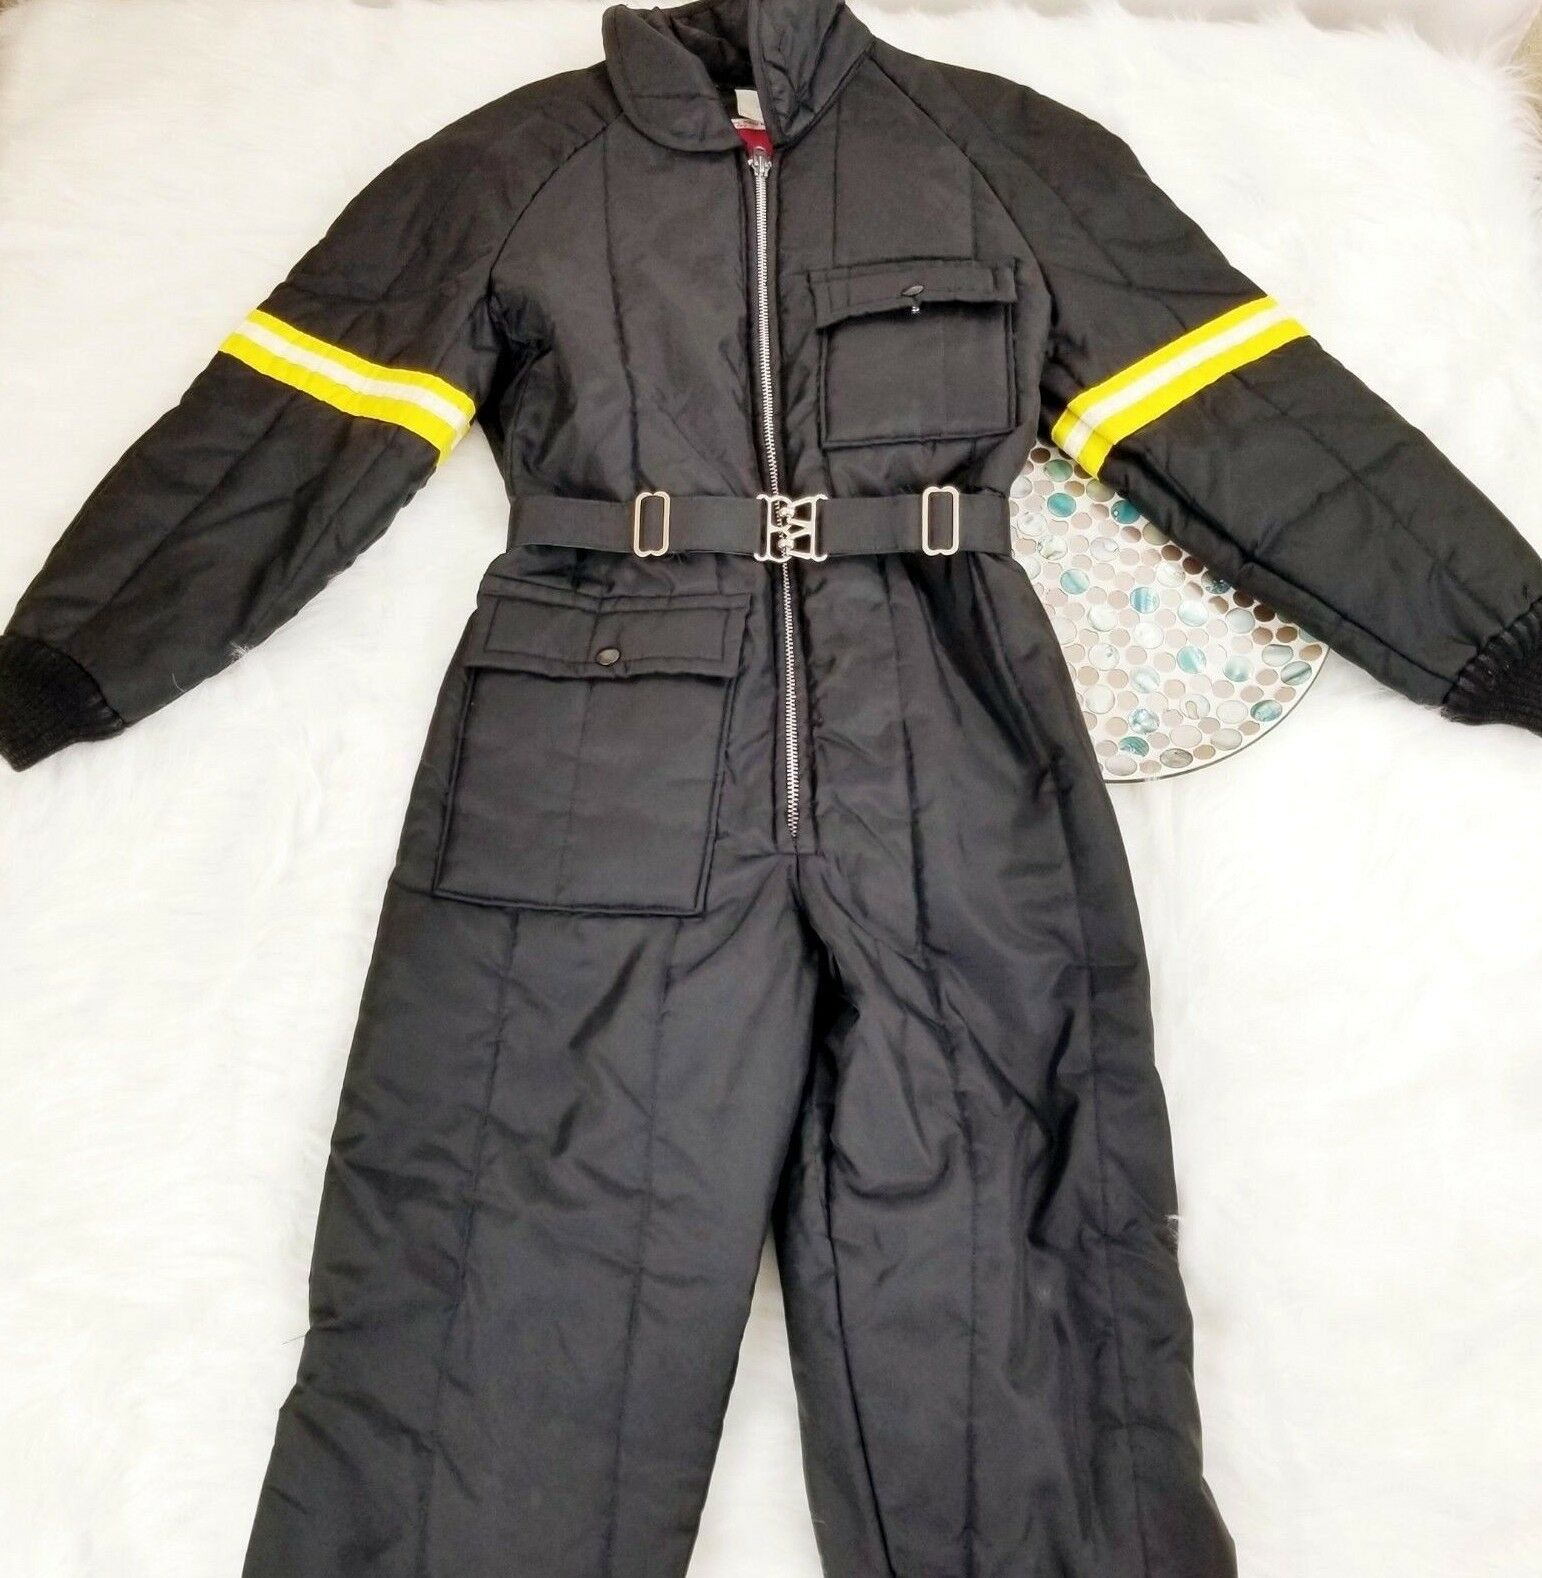 VTG JCPenny Snowmobile Apparel 1 PC Ski Snow Suit Teens Size 16 Zip Up Bodysuit